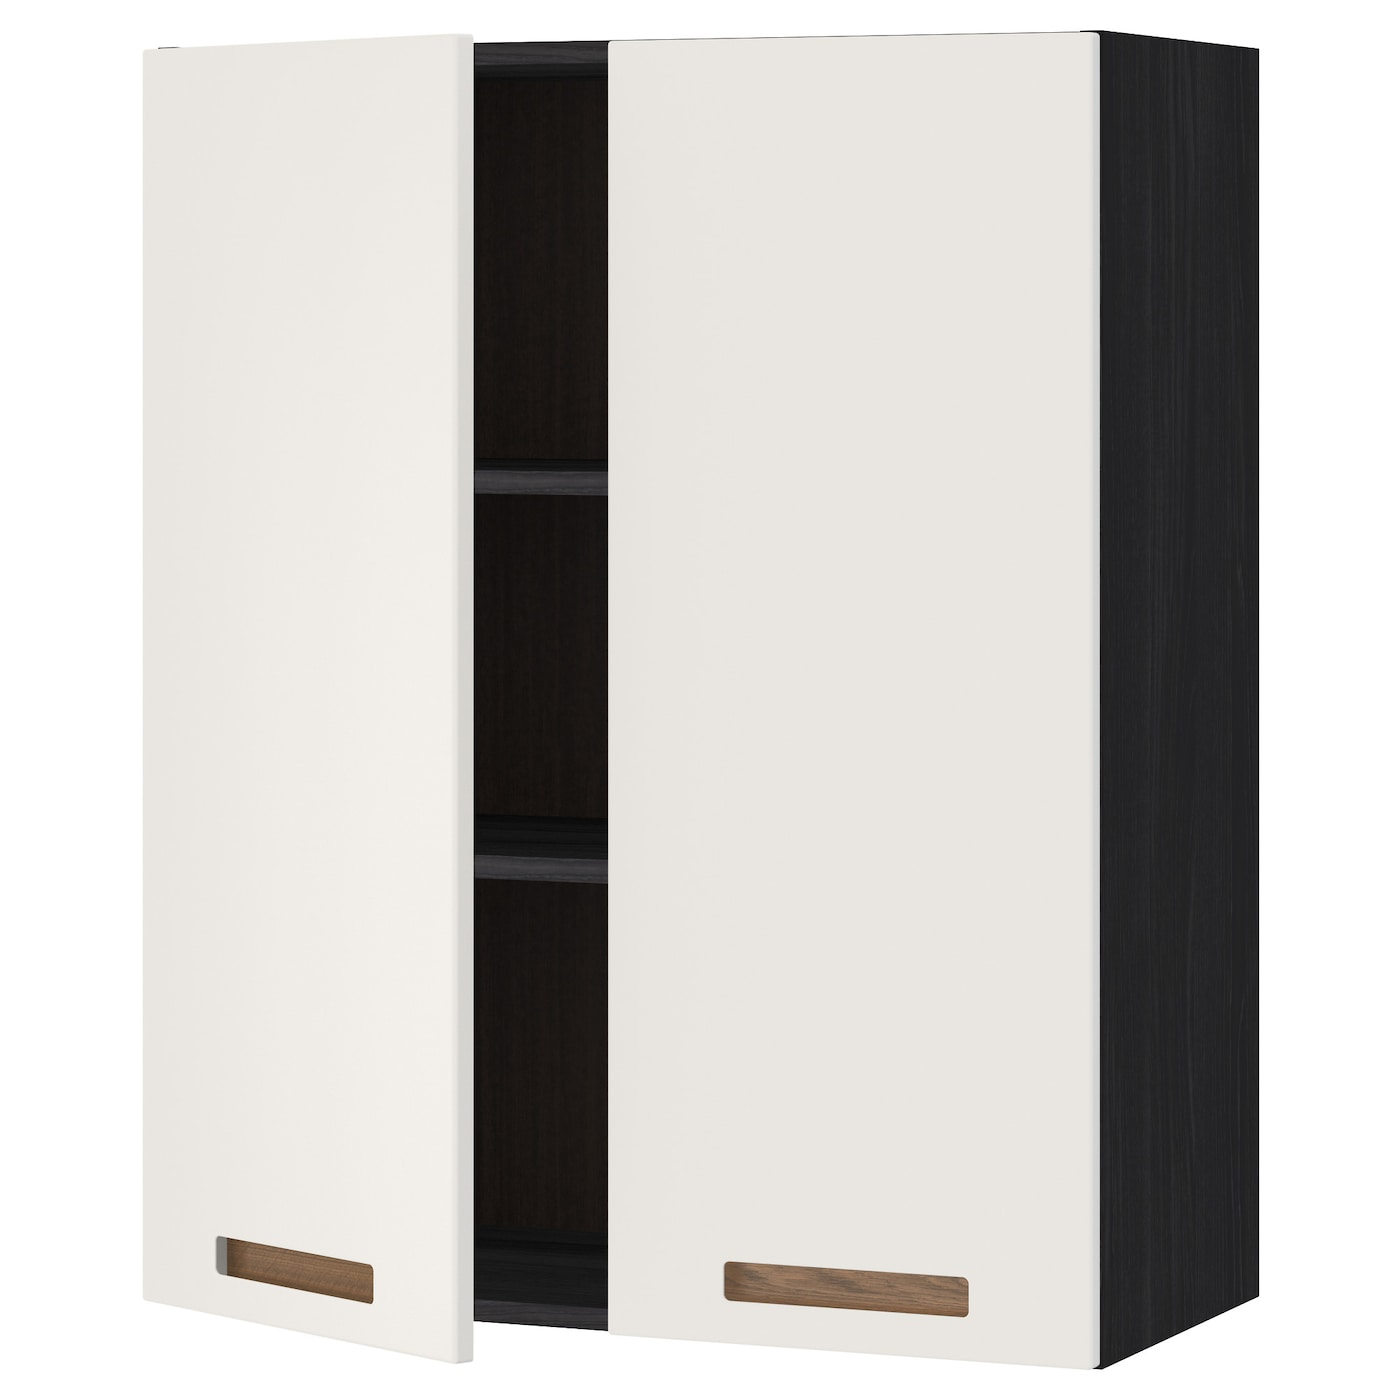 metod wall cabinet with shelves 2 doors black m rsta white. Black Bedroom Furniture Sets. Home Design Ideas